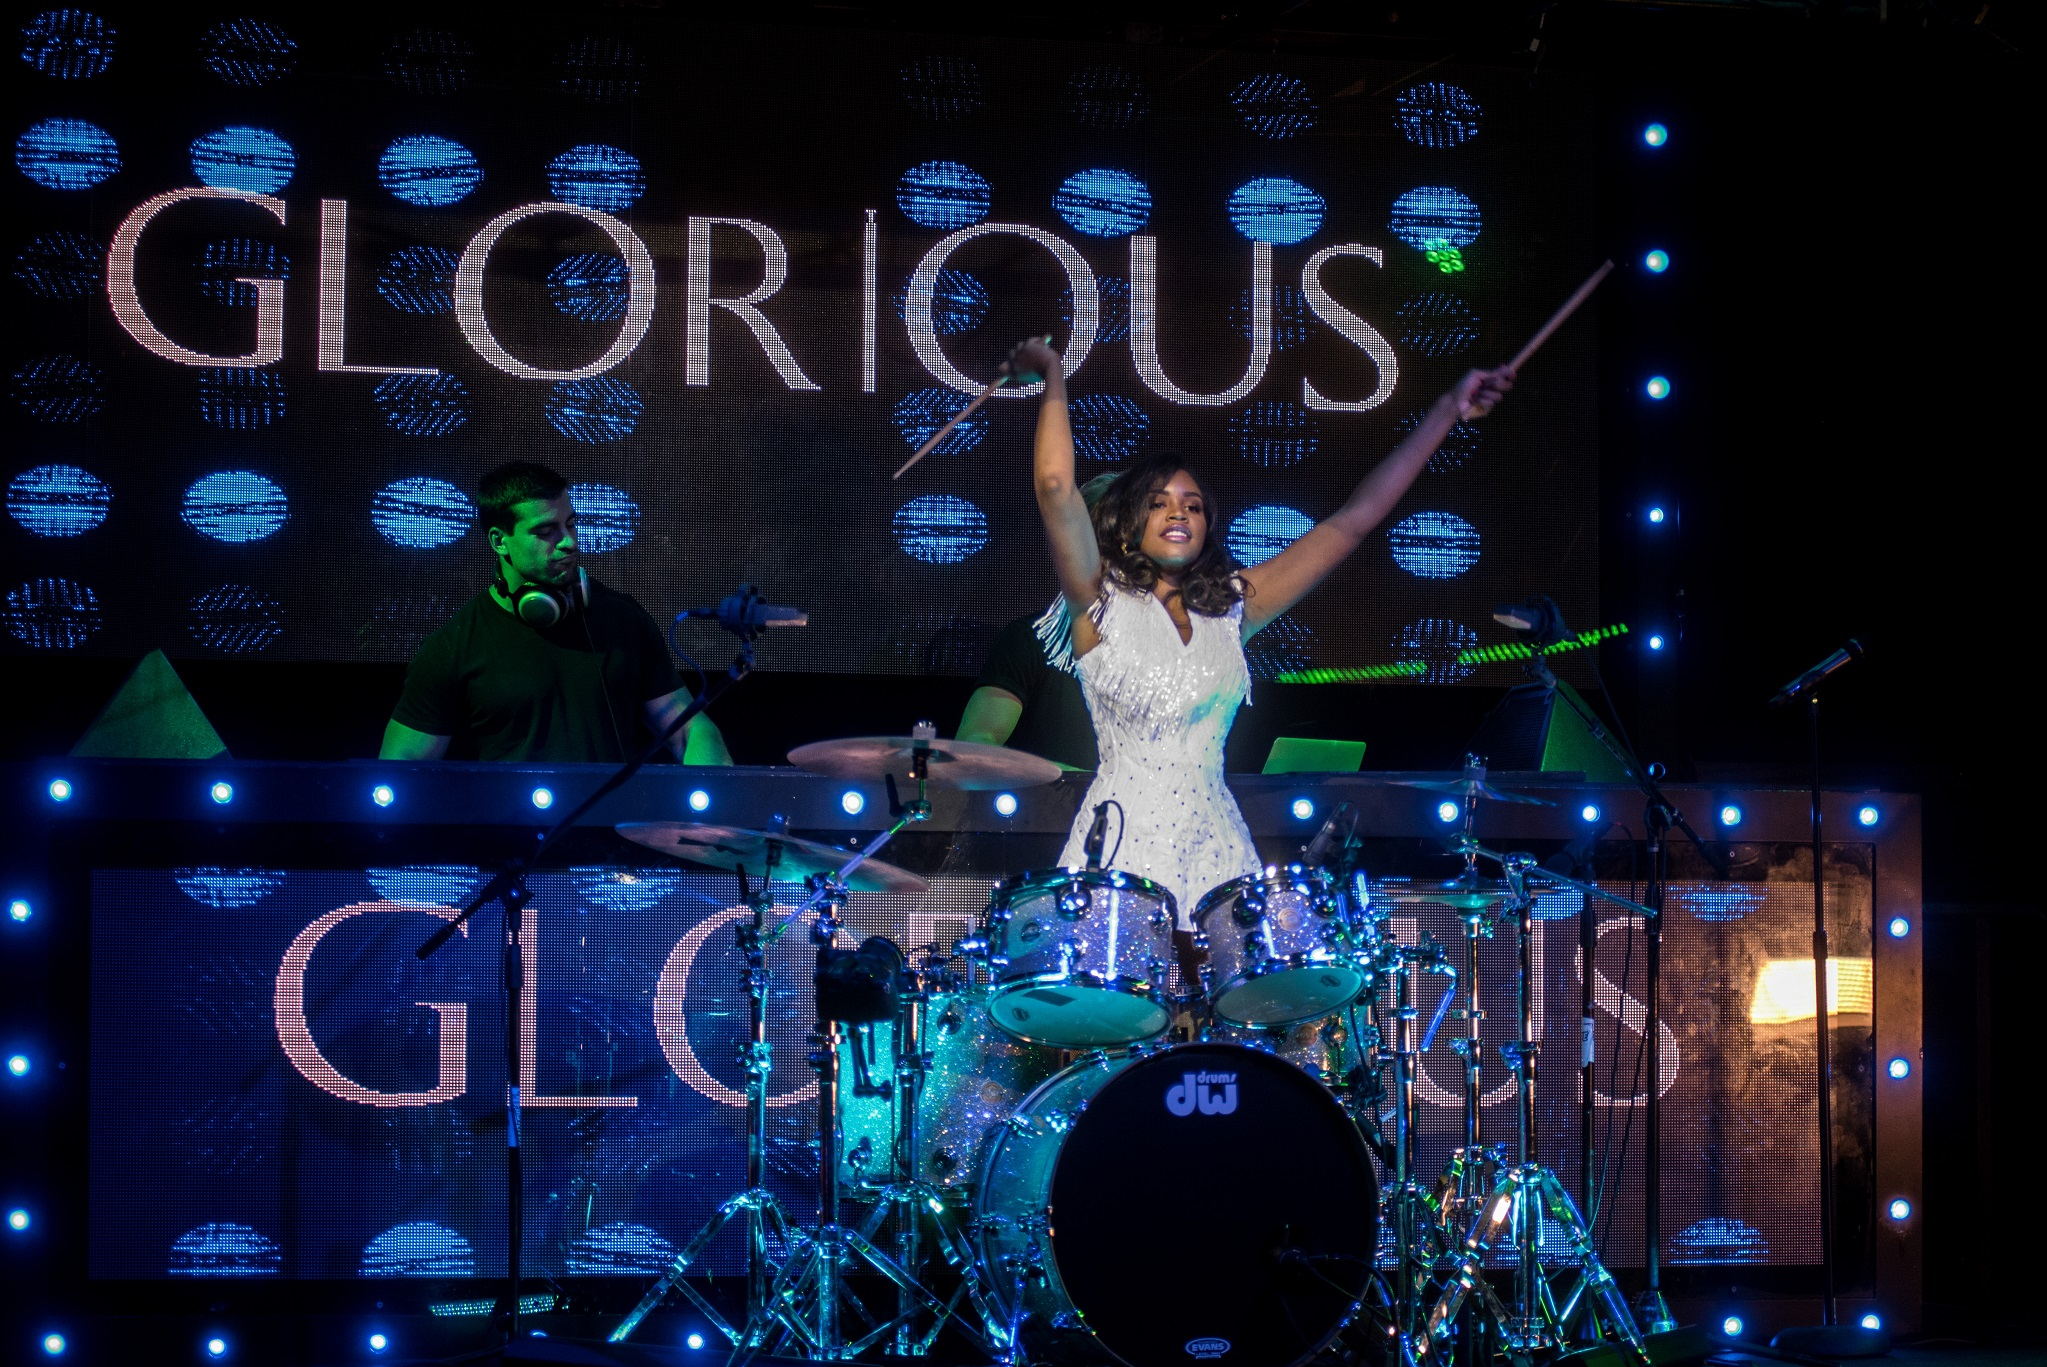 Glorious-Singer-Livetronica Drummer-Producer-Songwriter-Marquee-Nightclub-Video-New York-NY-44lr.jpg